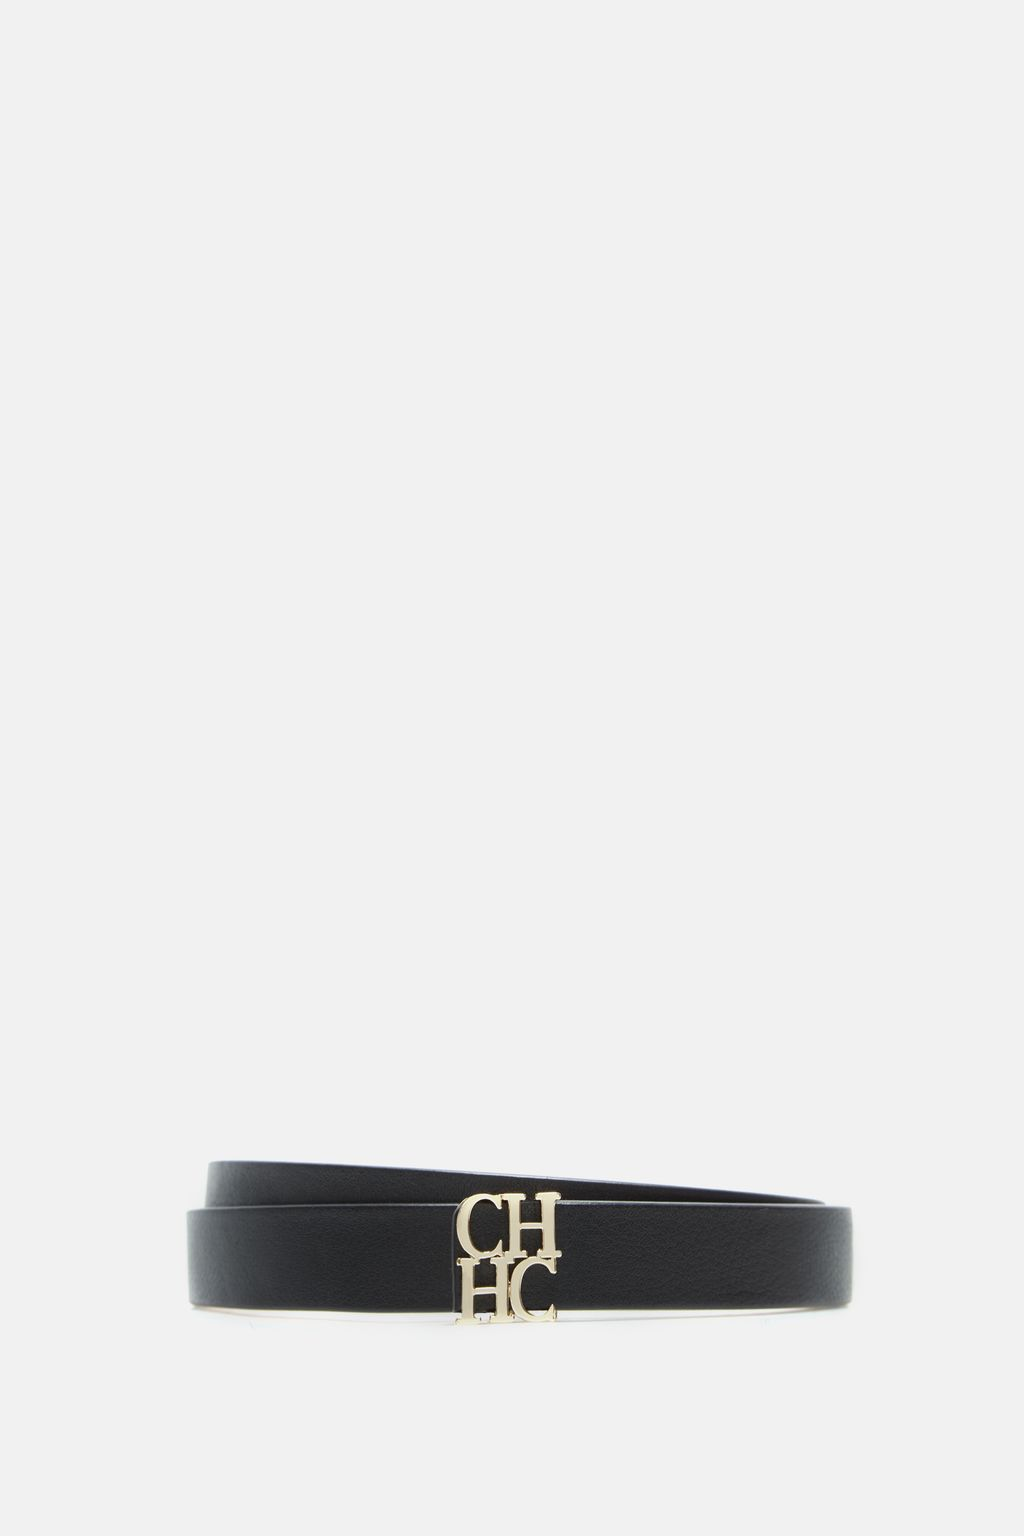 CH skinny leather belt